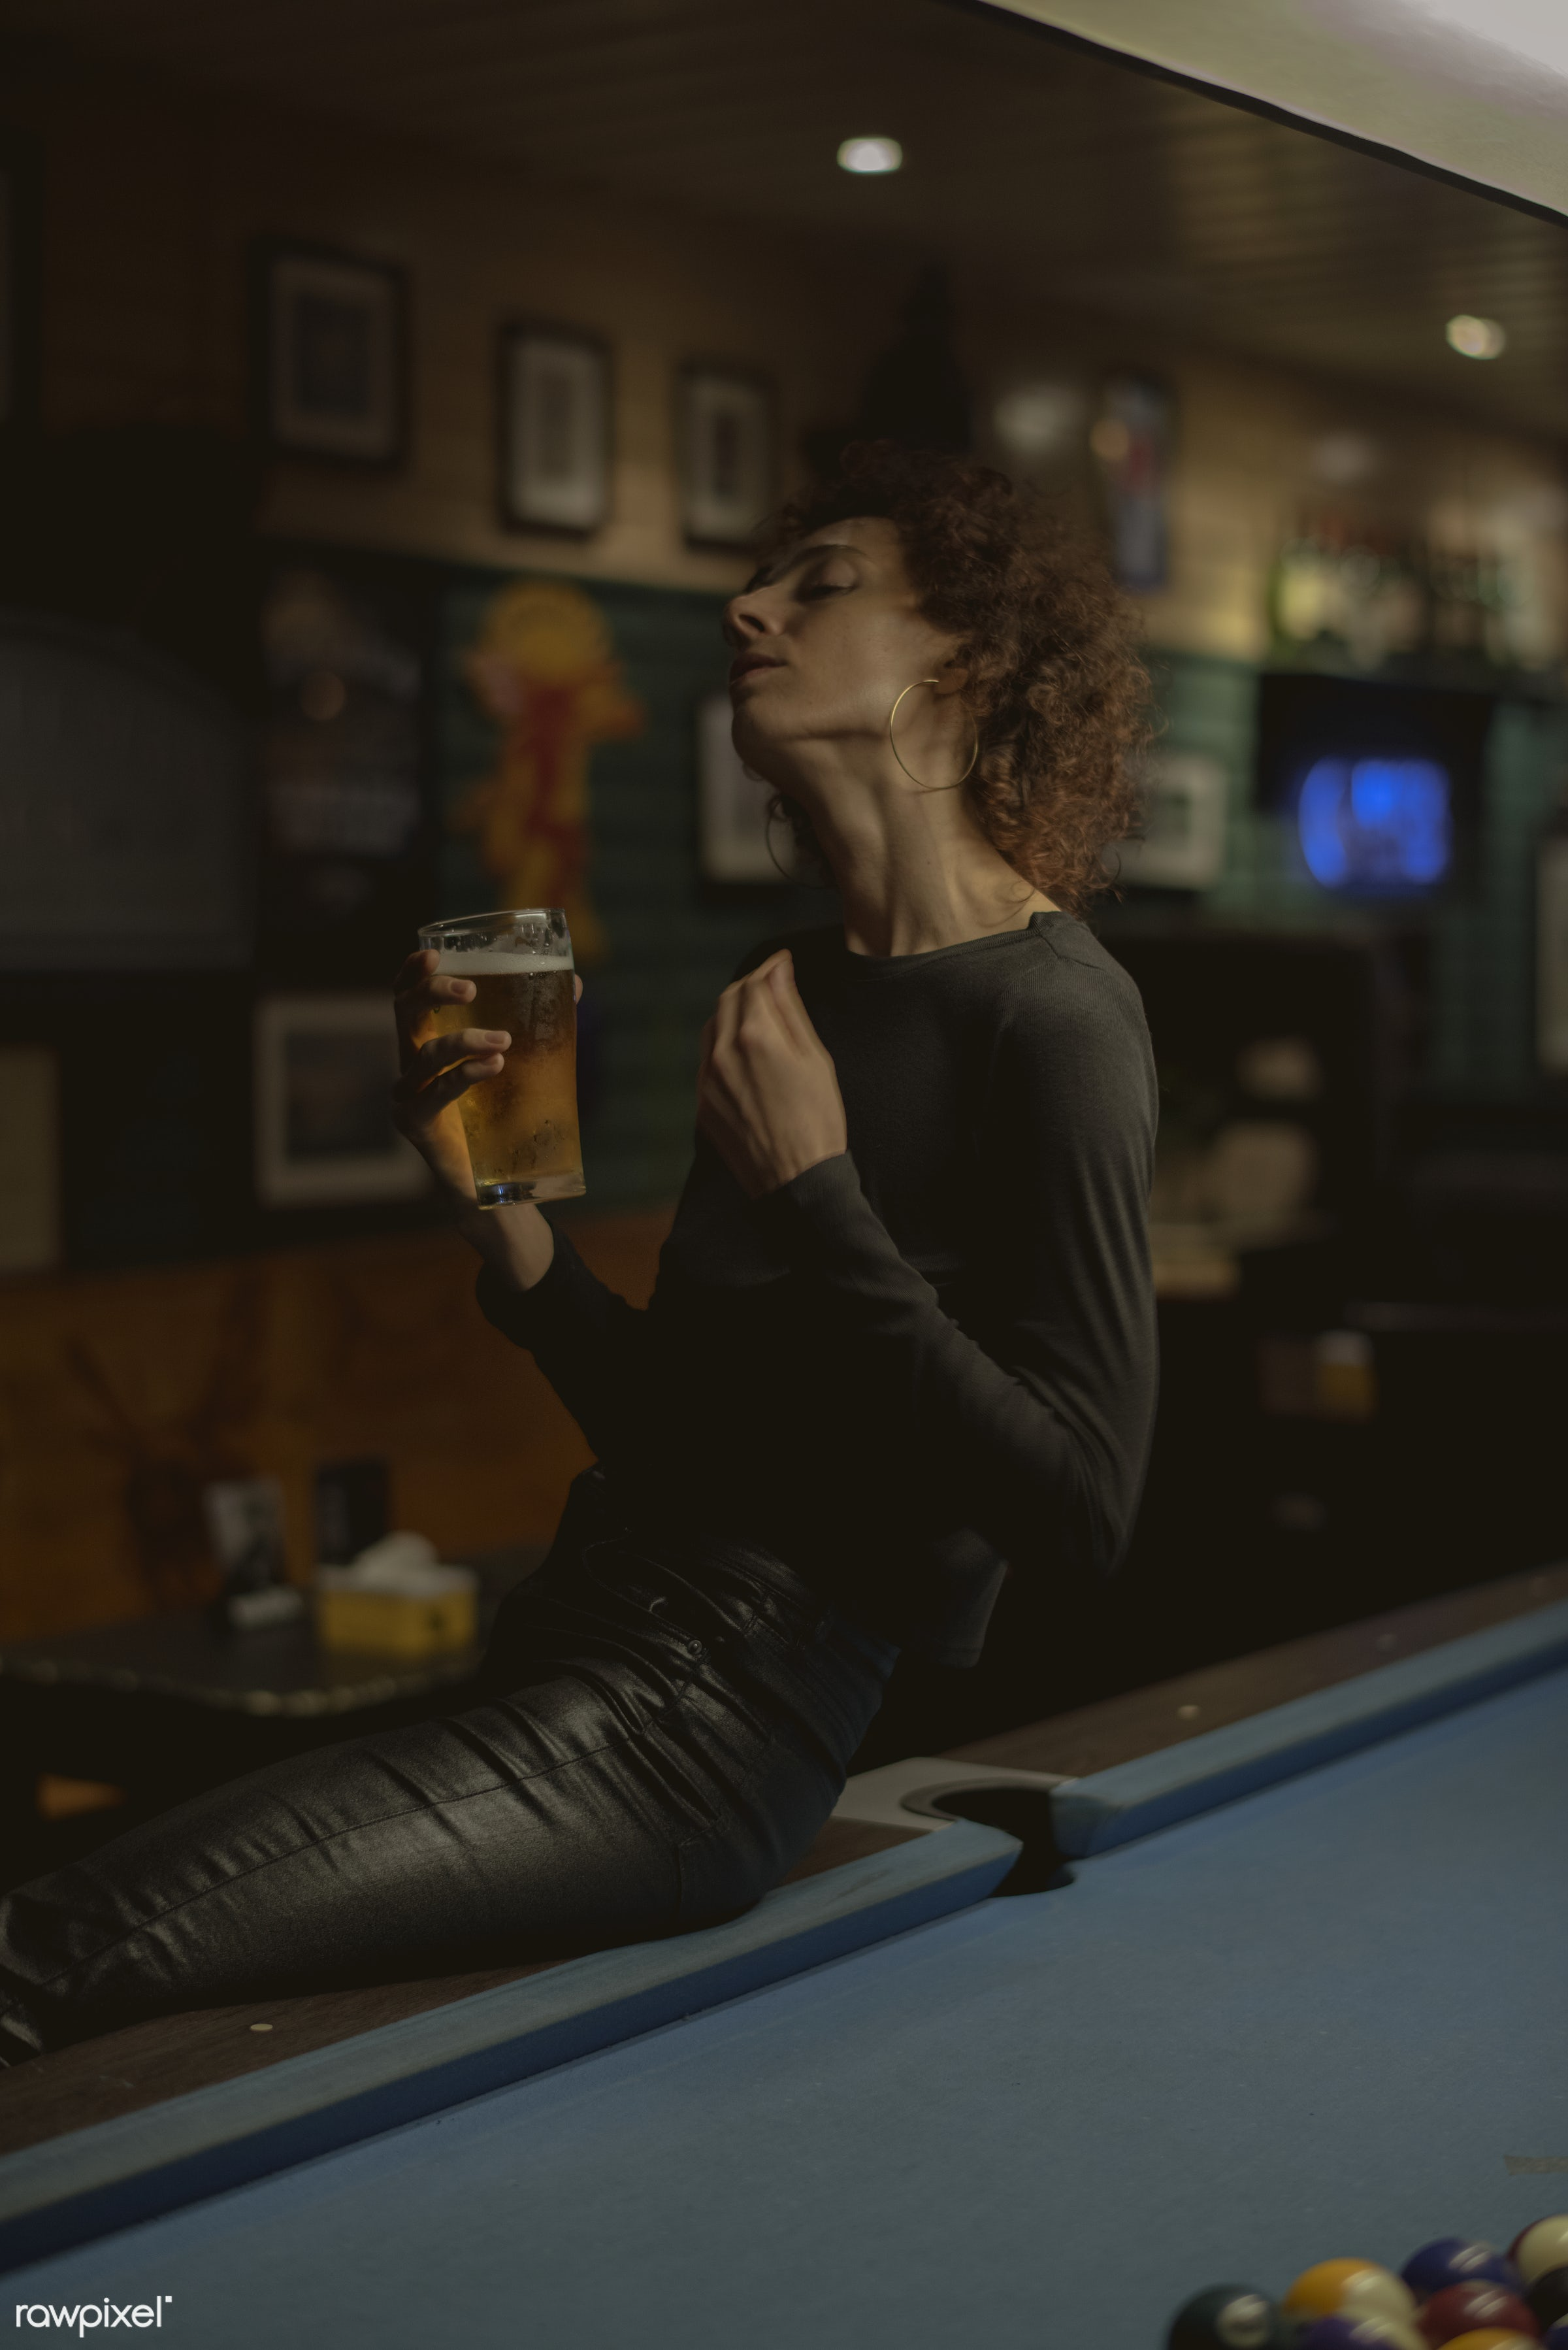 Woman having a beer at a bar - 8 ball, alcohol, alone, bar, beer, beverage, billiard, caucasian, cue, curly hair, dark,...